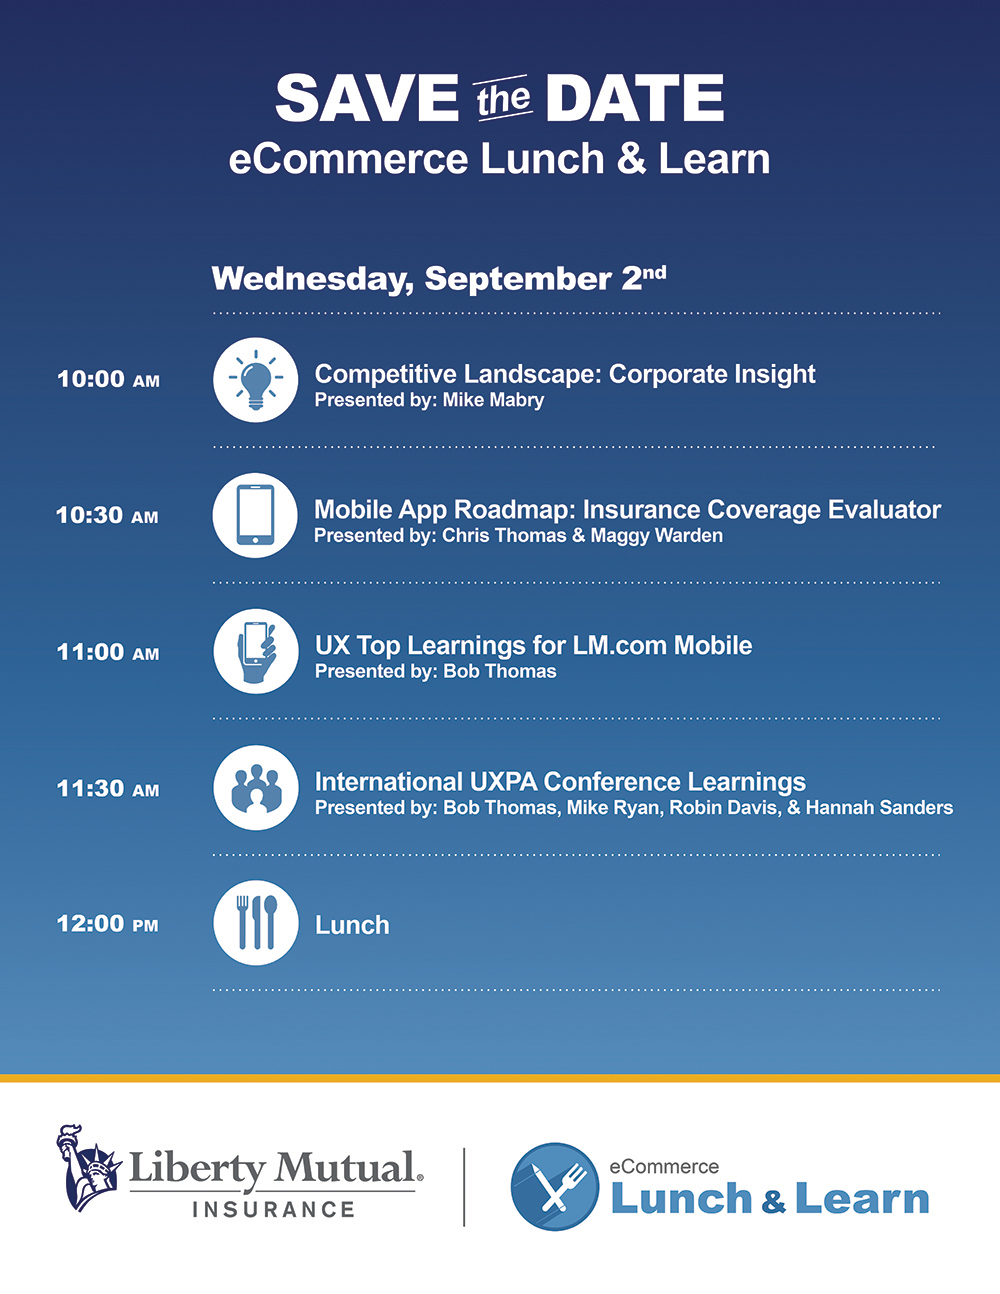 eCommerce Lunch & Learn Agenda